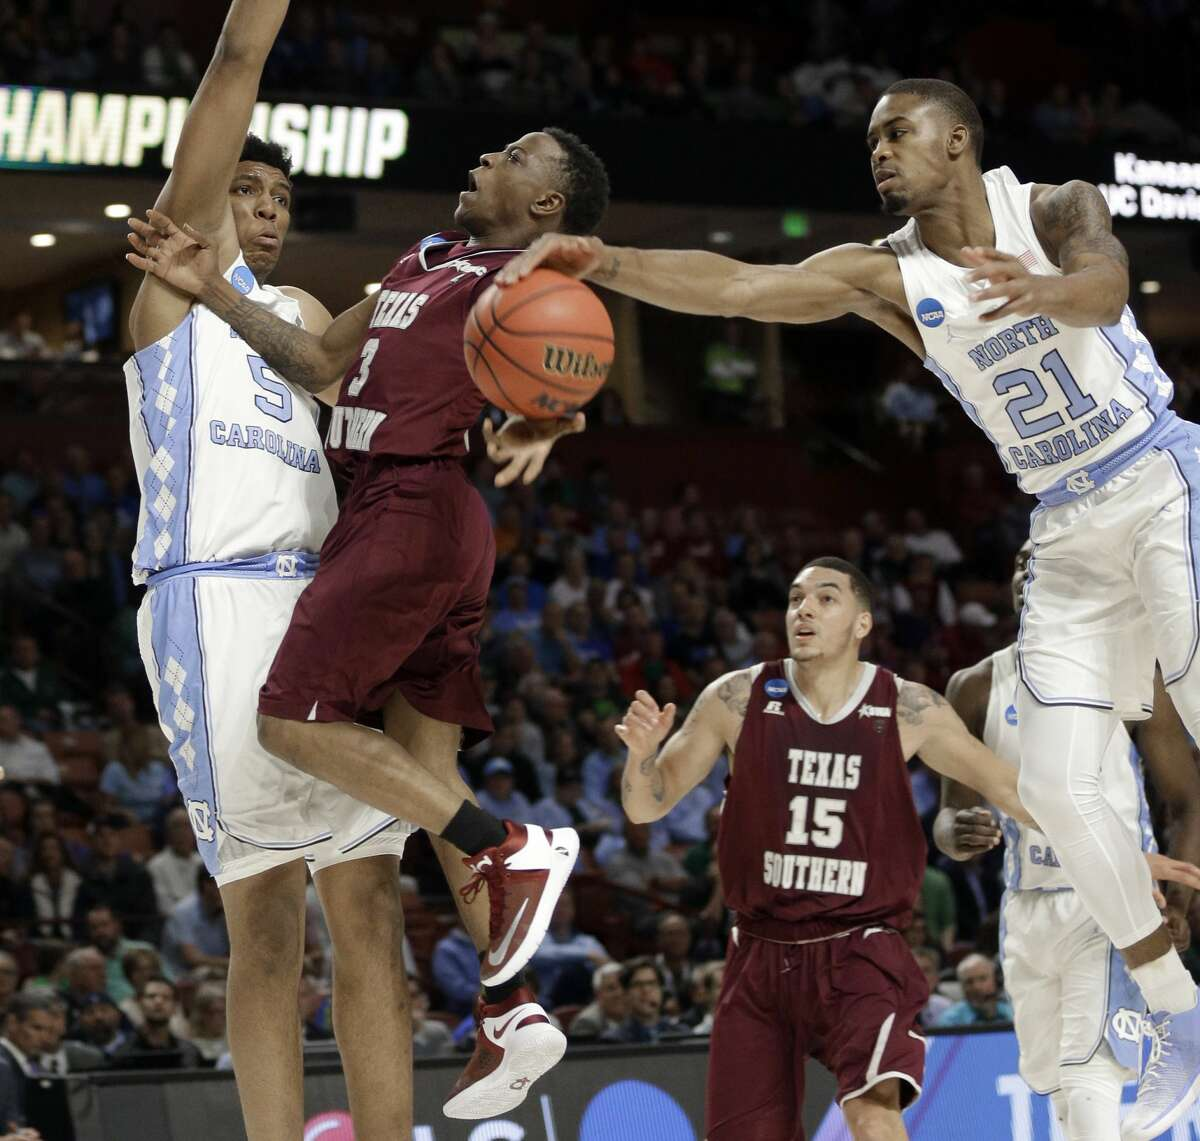 North Carolina's Seventh Woods (21) blocks a shot by Texas Southern's Demontrae Jefferson (3) as Tony Bradley (5) defends during the first half in a first-round game of the NCAA men's college basketball tournament in Greenville, S.C., Friday, March 17, 2017. (AP Photo/Chuck Burton)